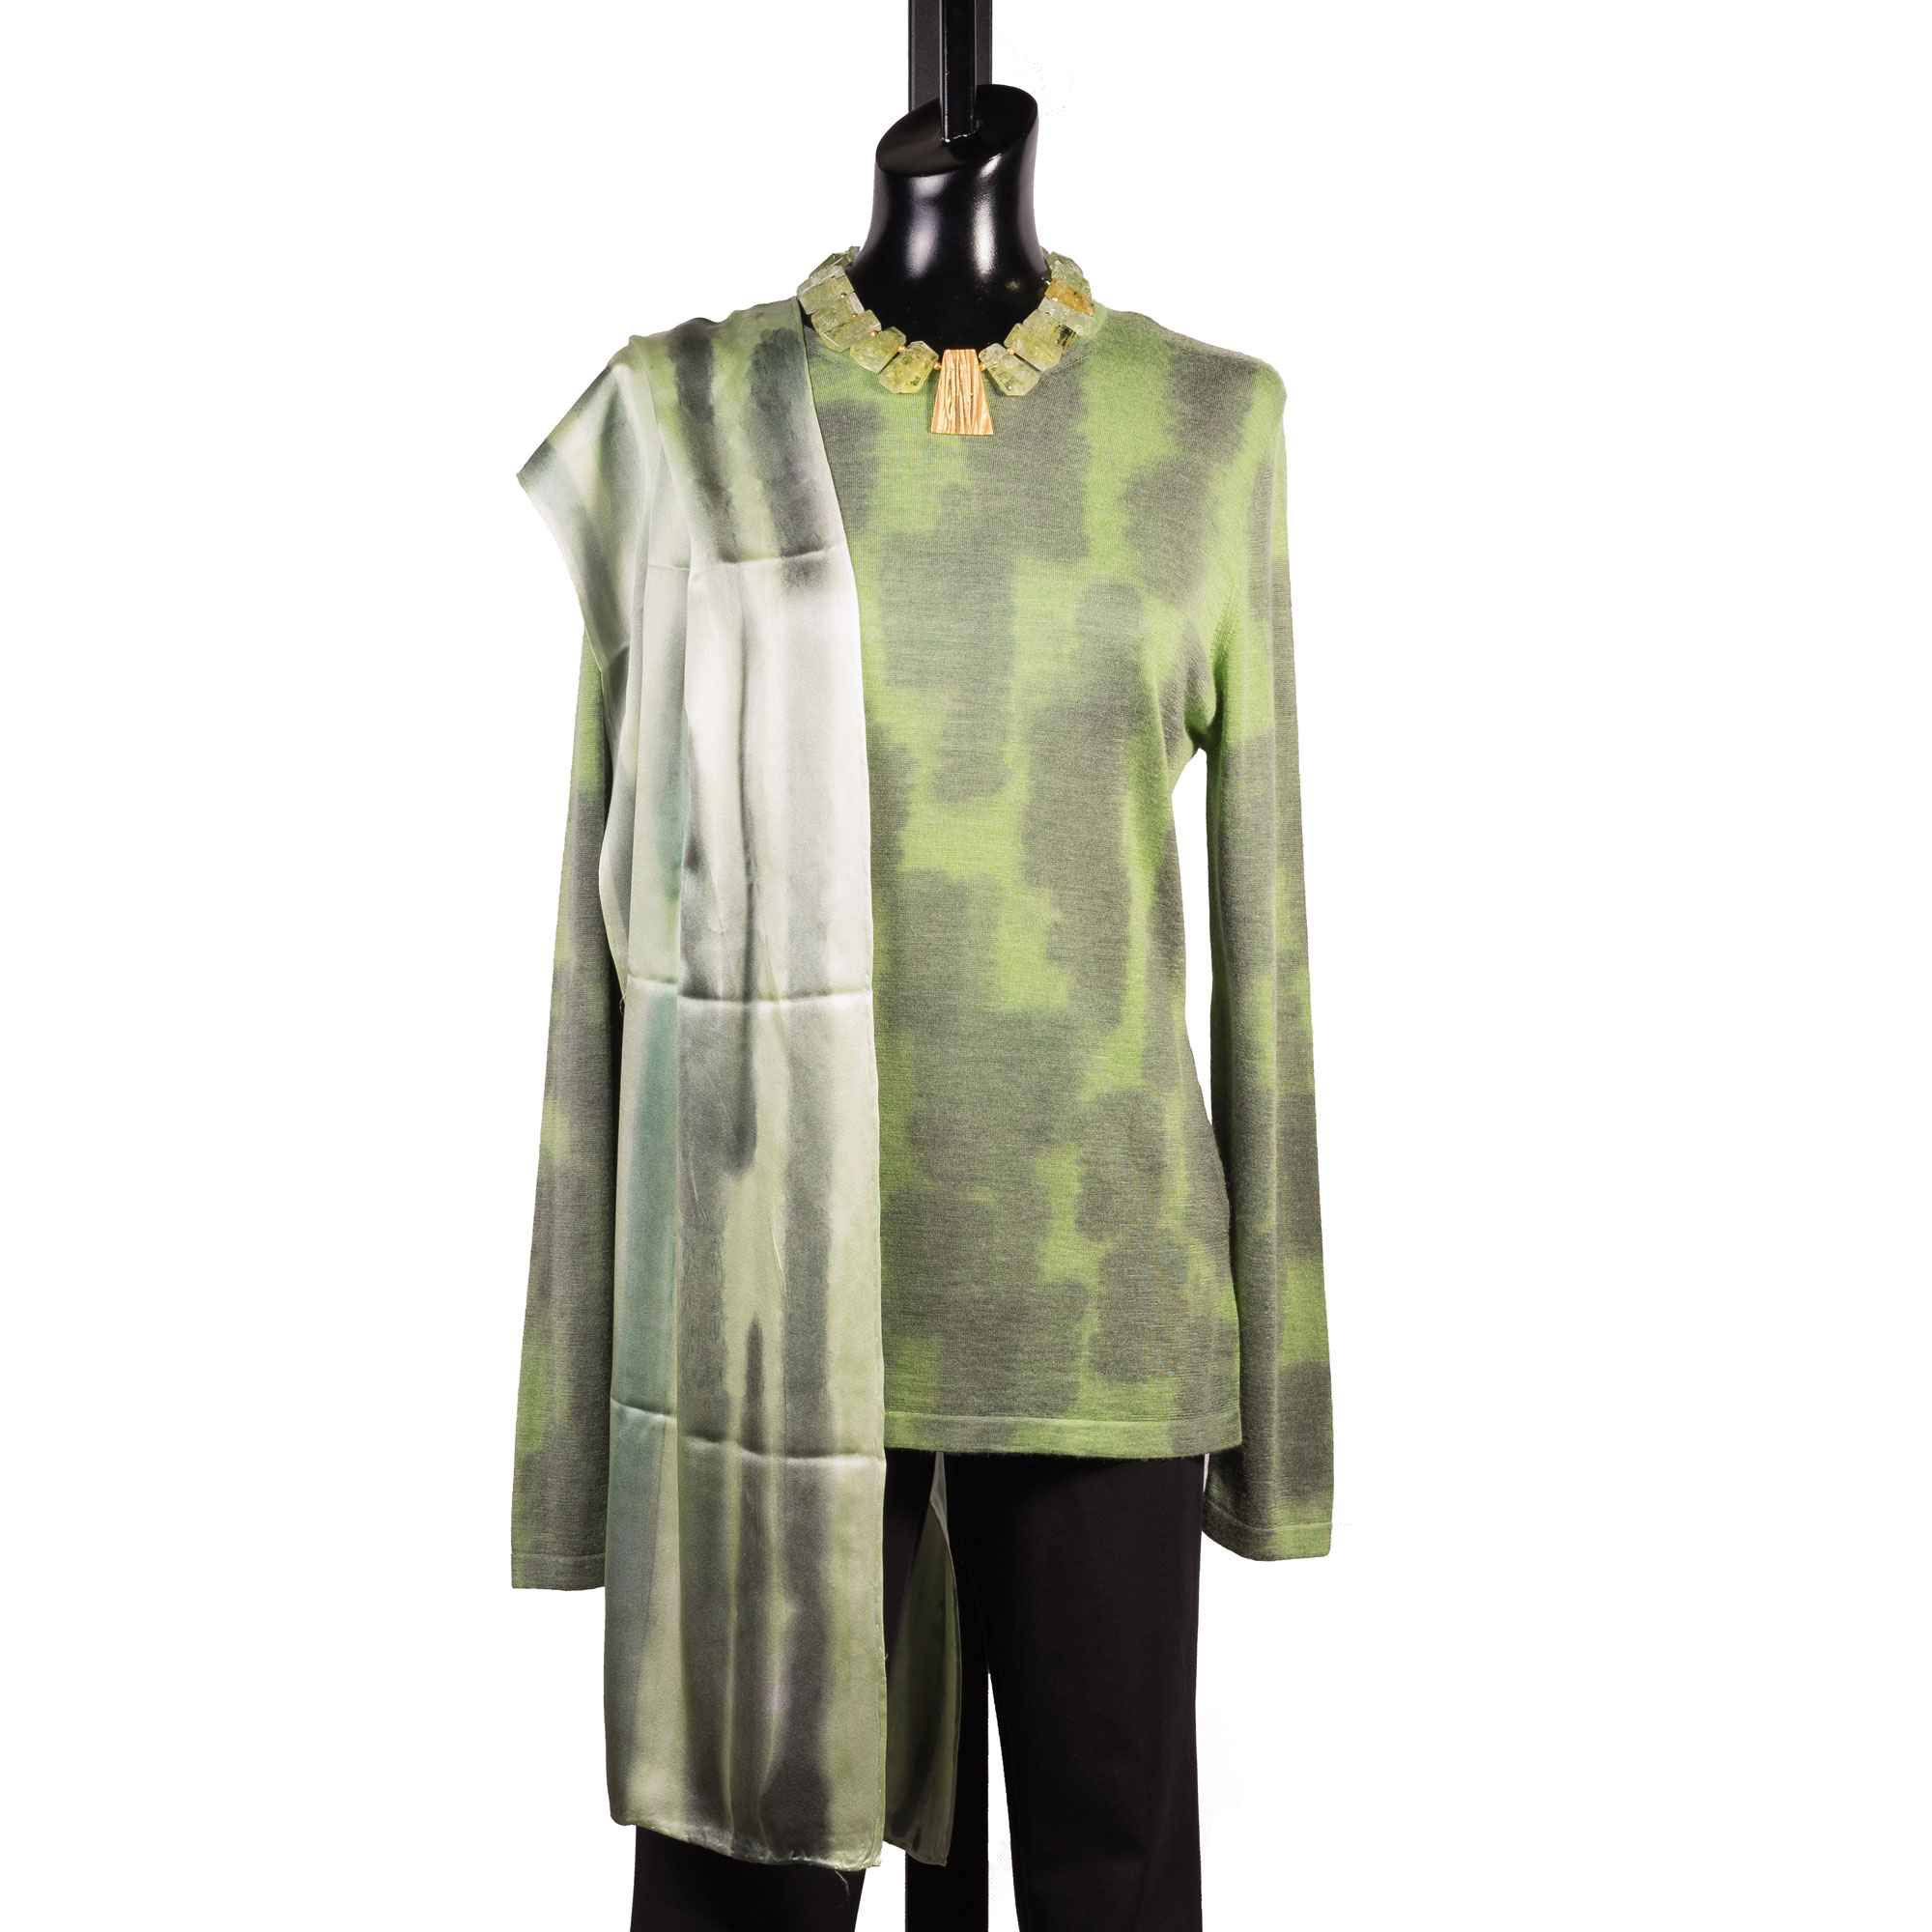 9-melarosa-wearable-art-green.jpg